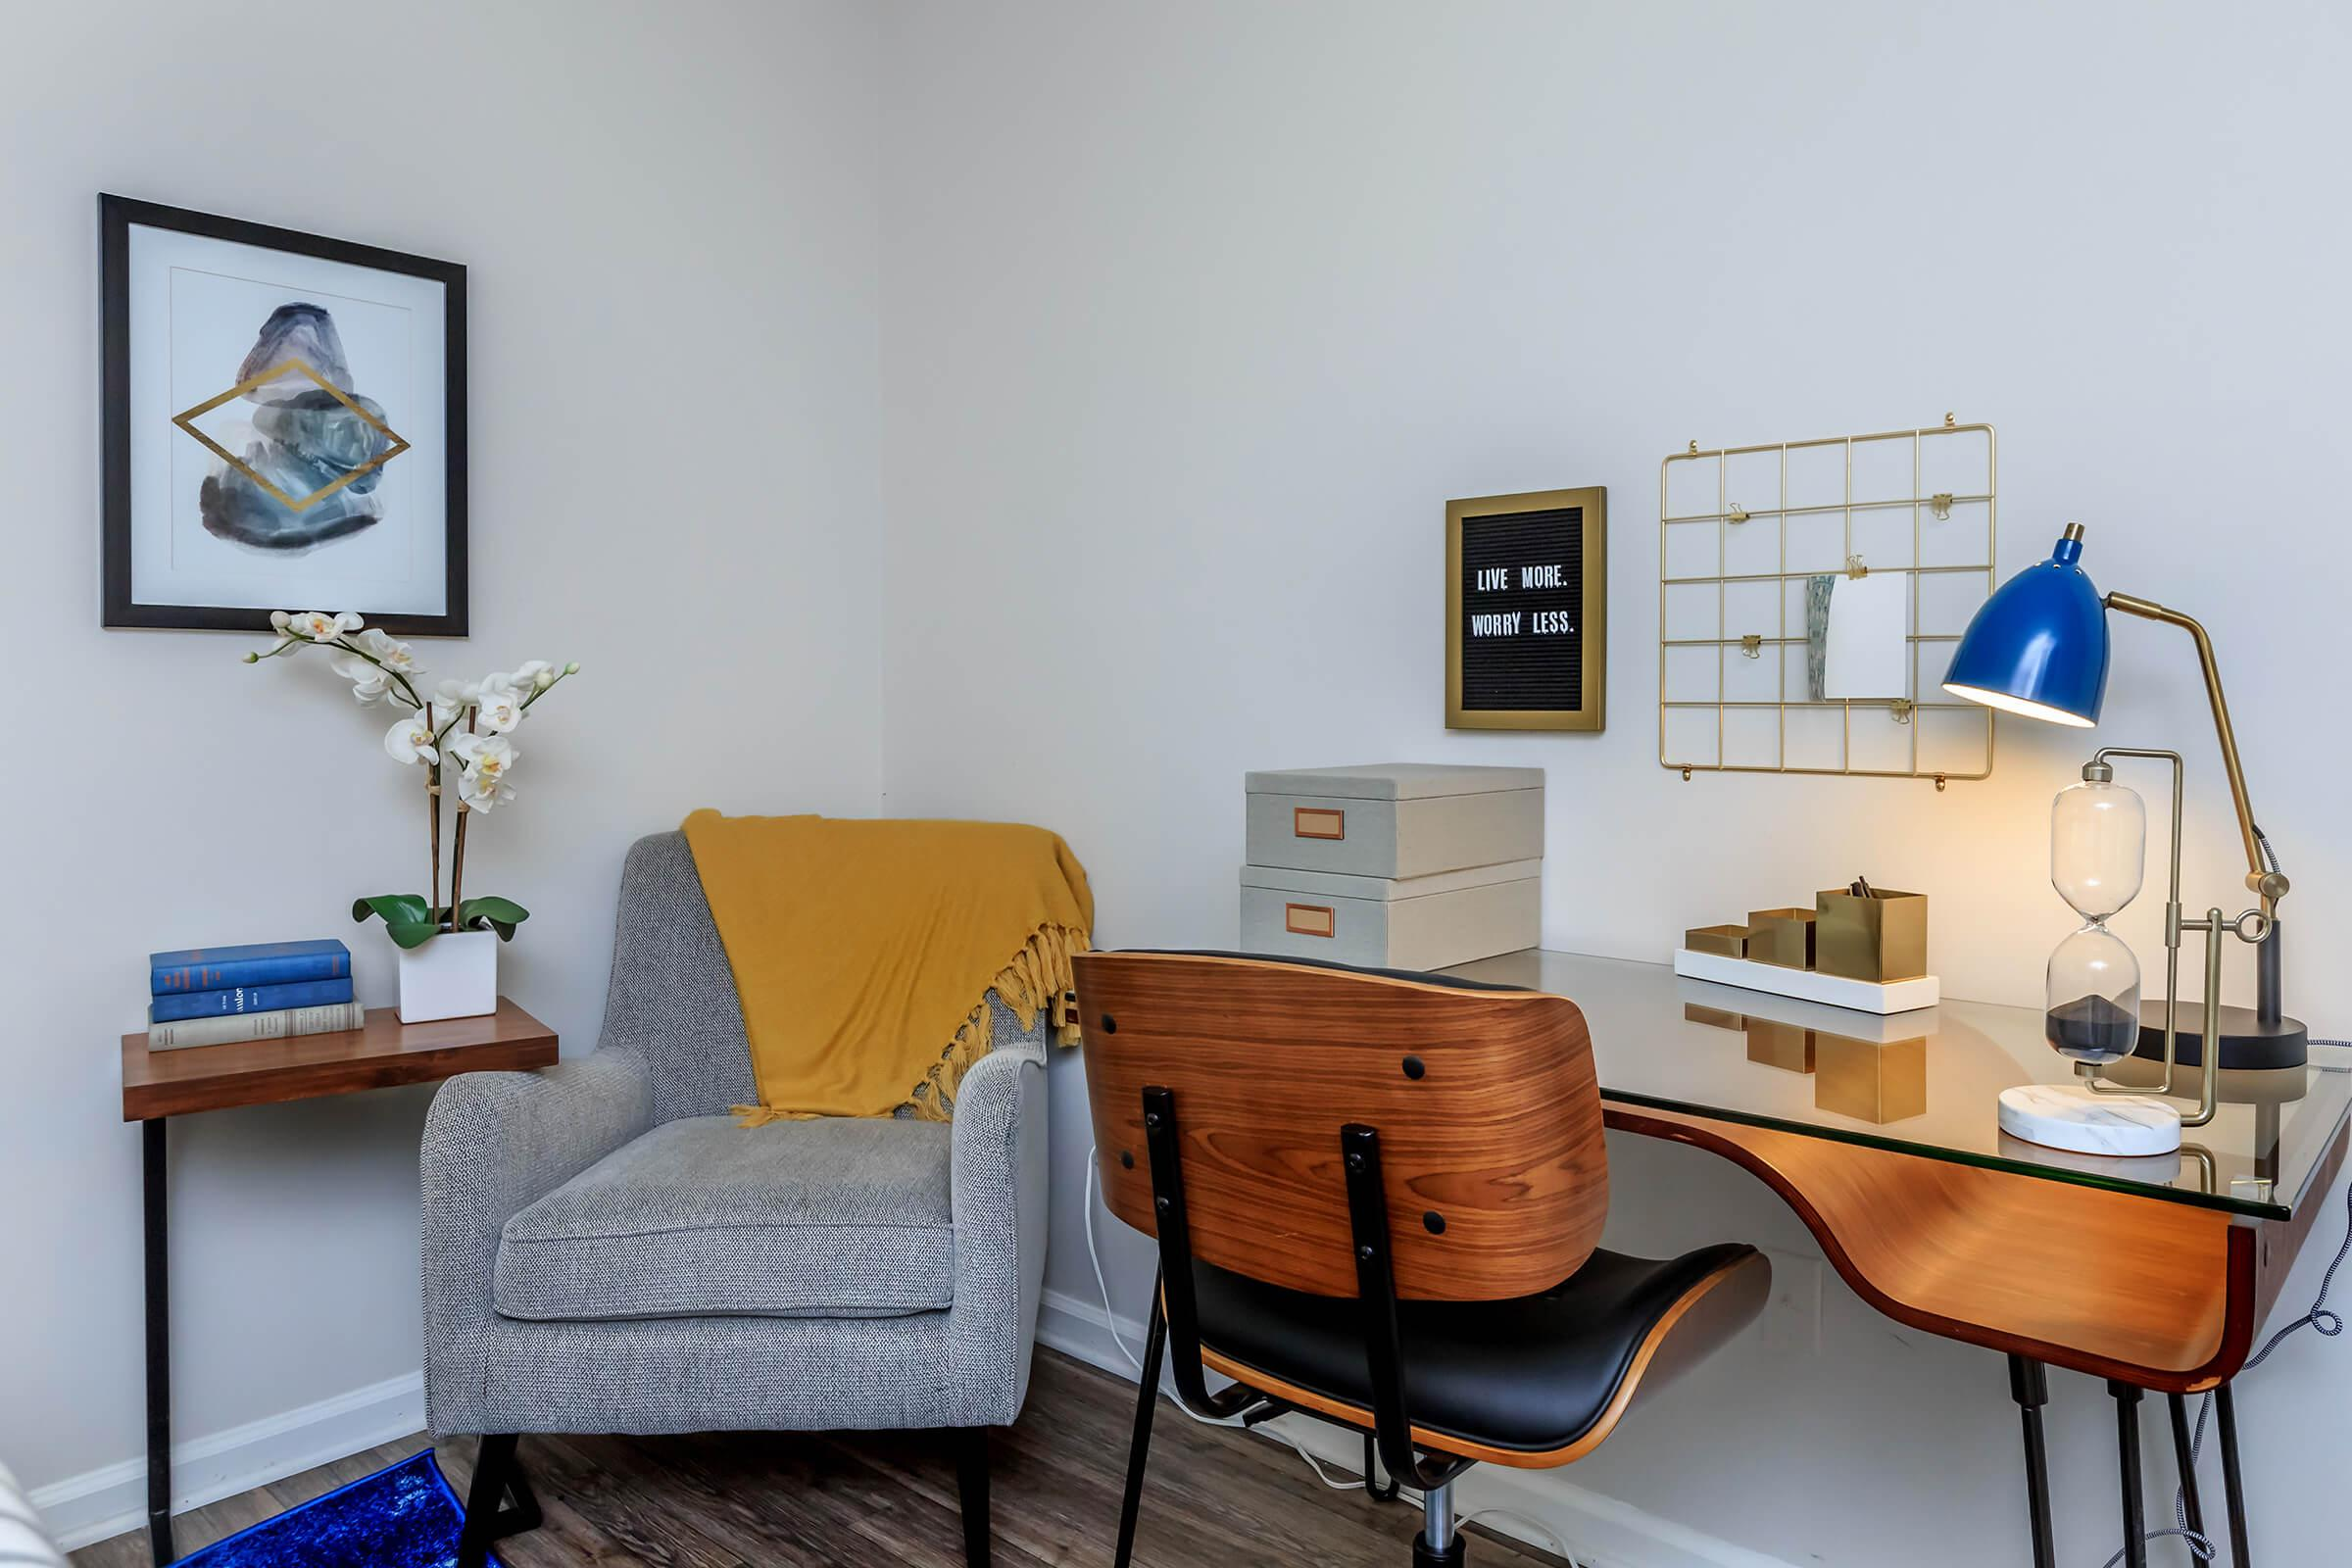 a living room with a desk and chair